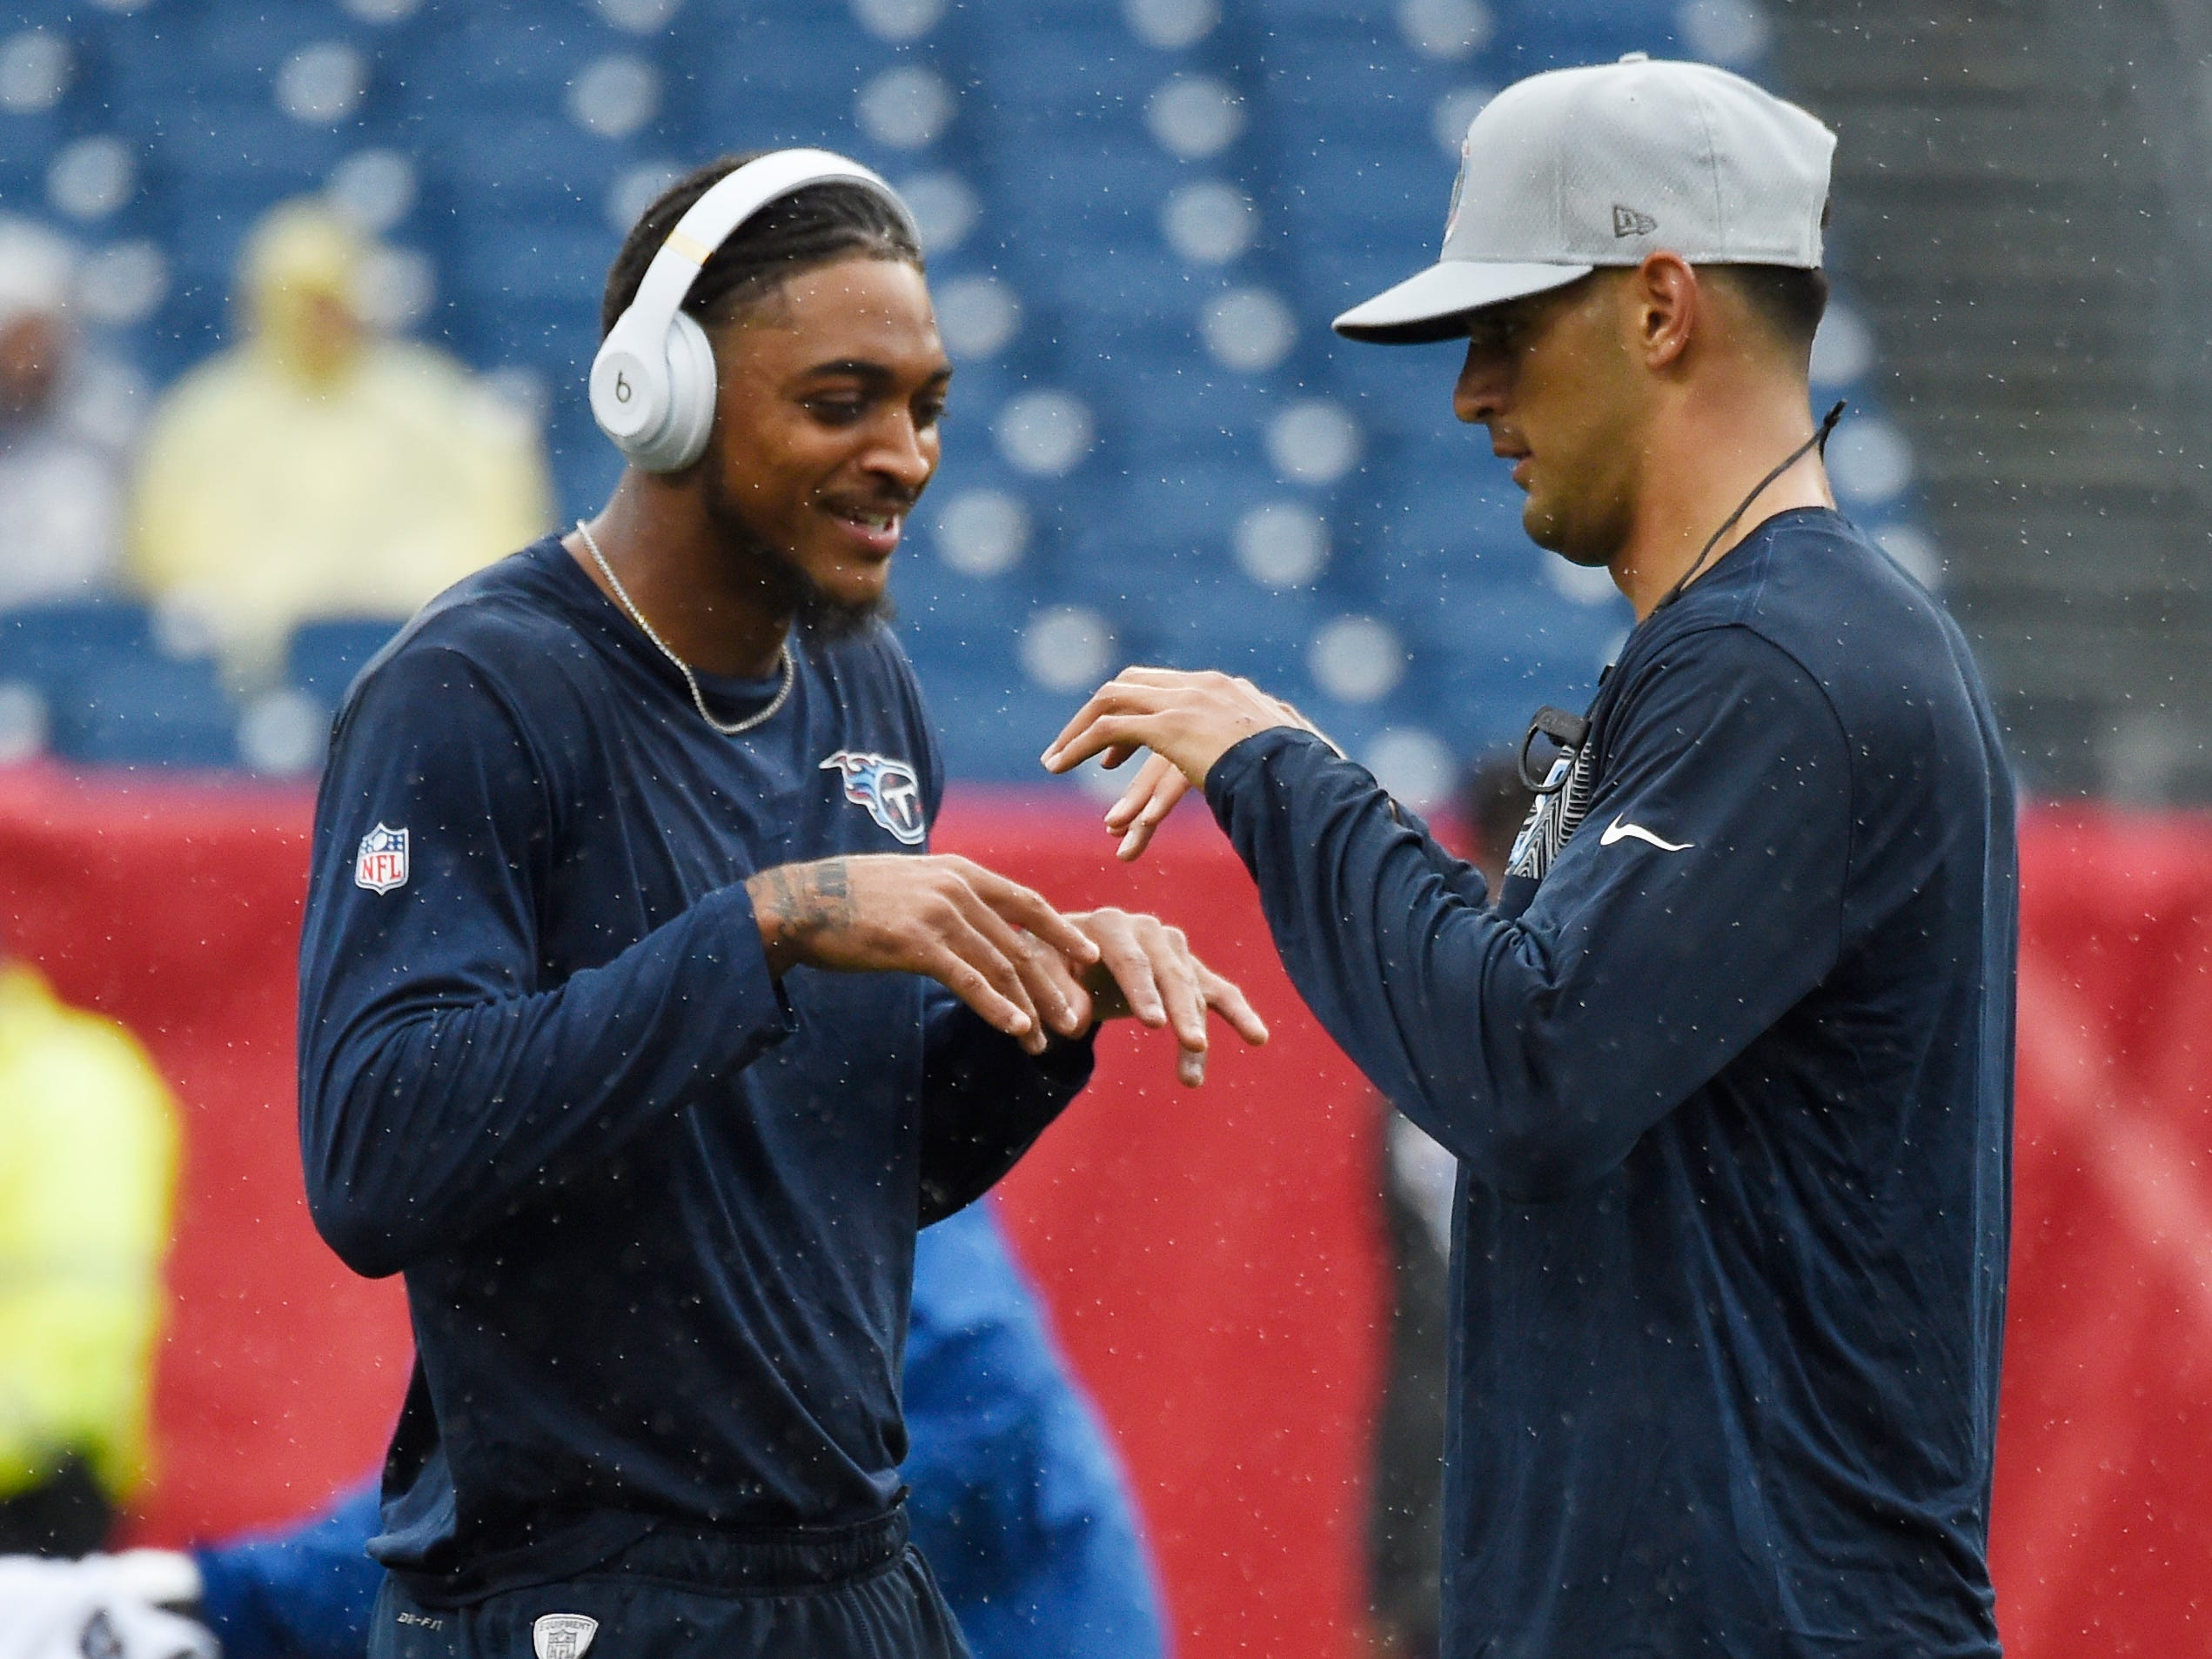 Titans wide receiver Tajae Sharpe (19) and quarterback Marcus Mariota (8) do their handshake before the game against the Ravens at Nissan Stadium Sunday, Oct. 14, 2018, in Nashville, Tenn.